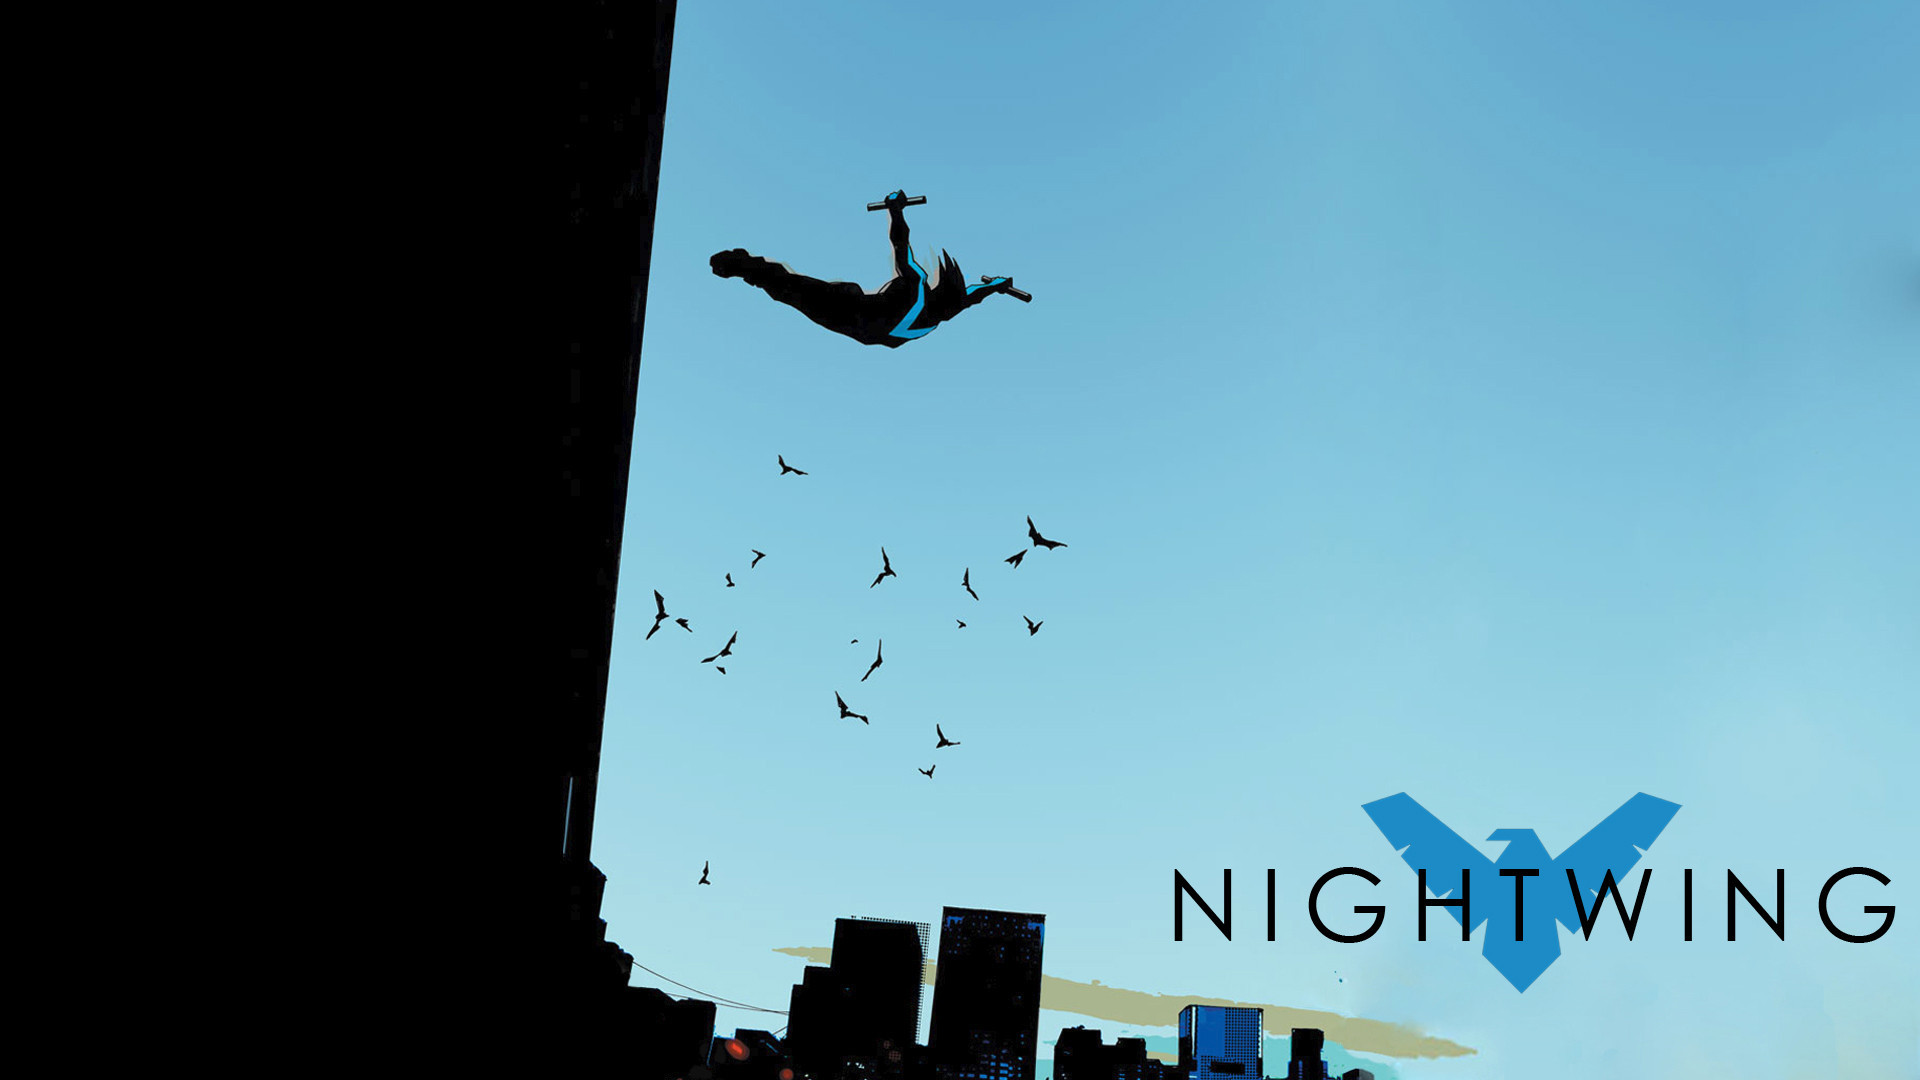 Res: 1920x1080, HD Quality Live Nightwing Backgrounds - Lamonica Sponaugle for PC & Mac,  Laptop, Tablet, Mobile Phone